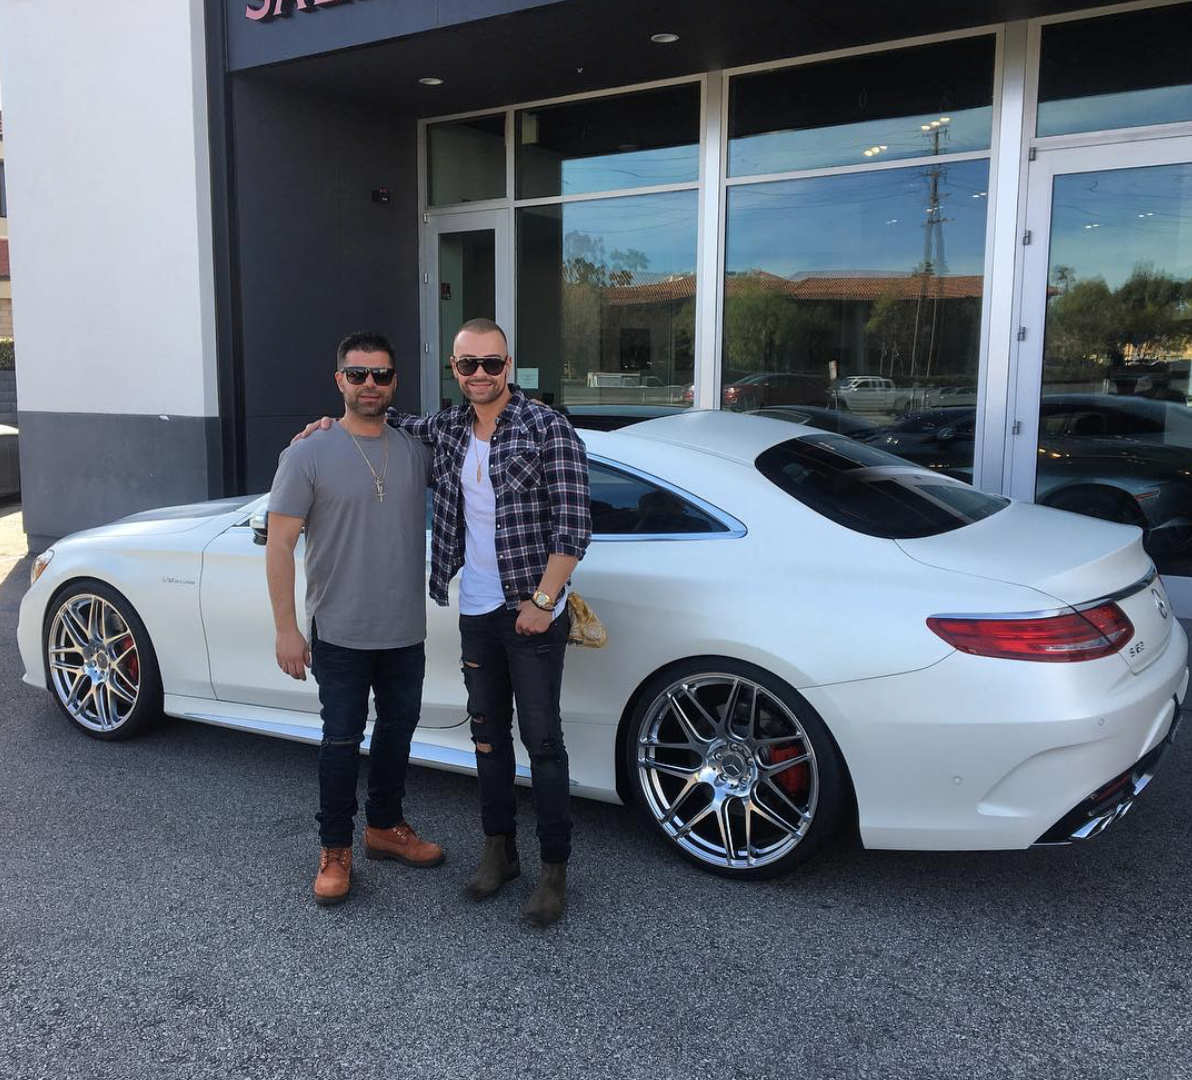 Scott And Amie Yancey Joey Lawrence Has A Sweet S63 Coupe Celebrity Cars Blog